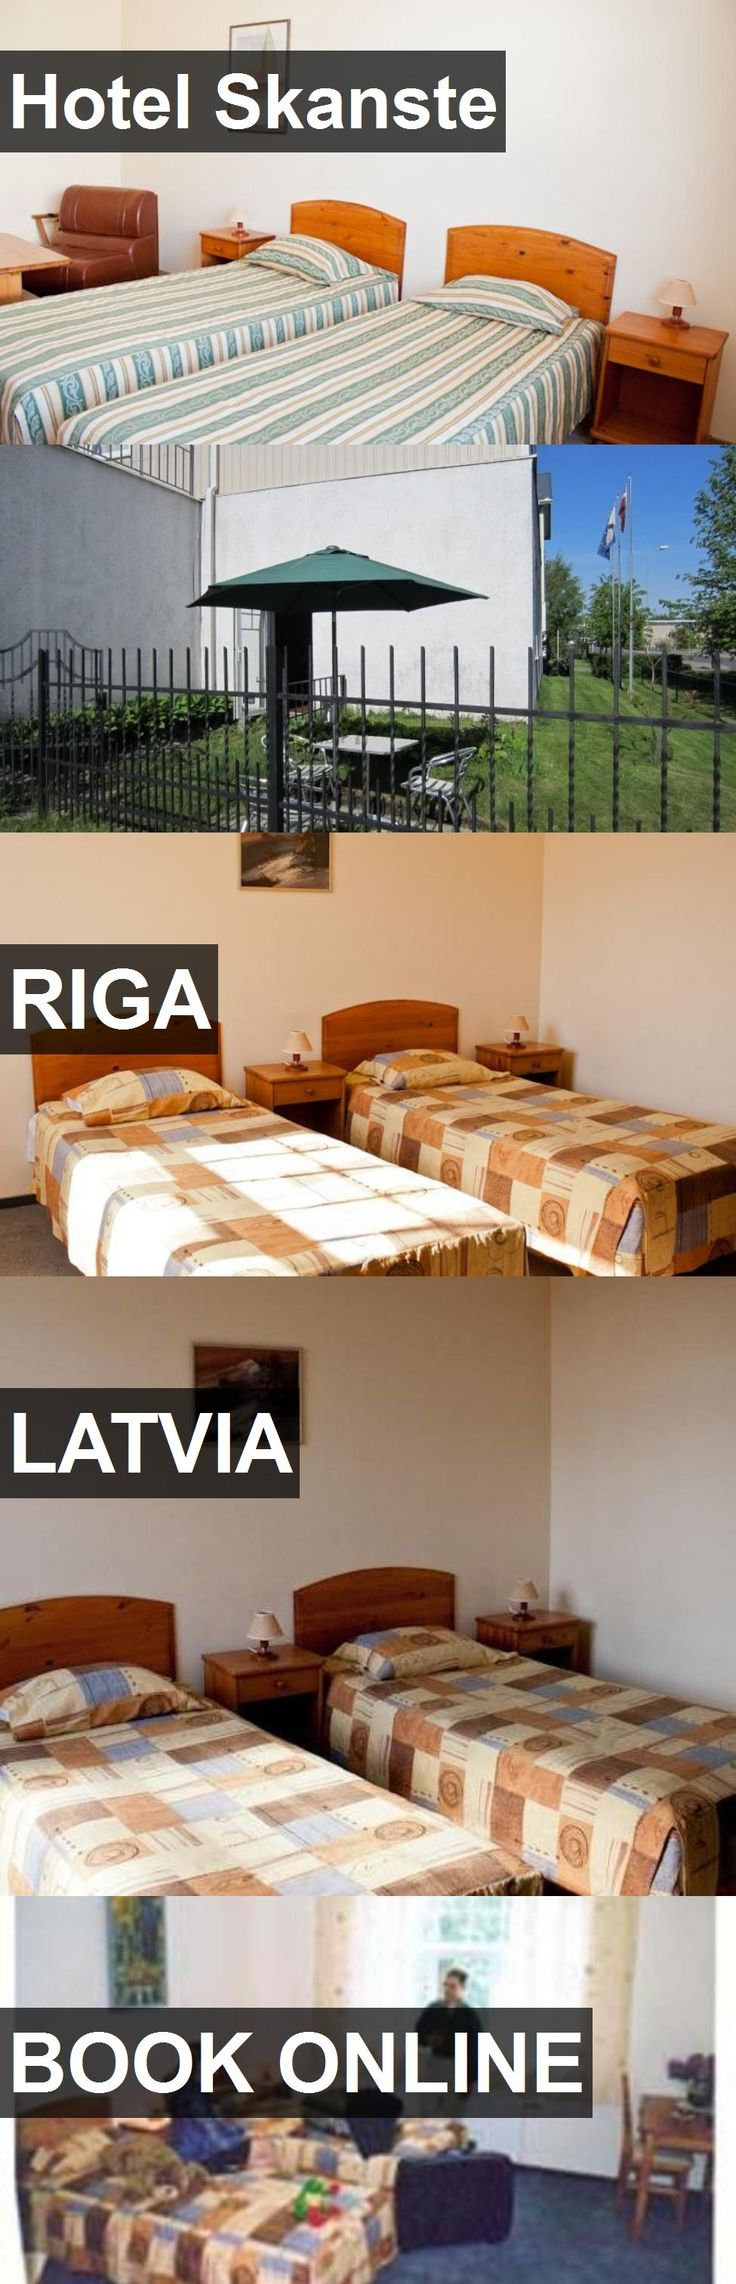 Hotel Skanste in Riga, Latvia. For more information, photos, reviews and best prices please follow the link. #Latvia #Riga #travel #vacation #hotel